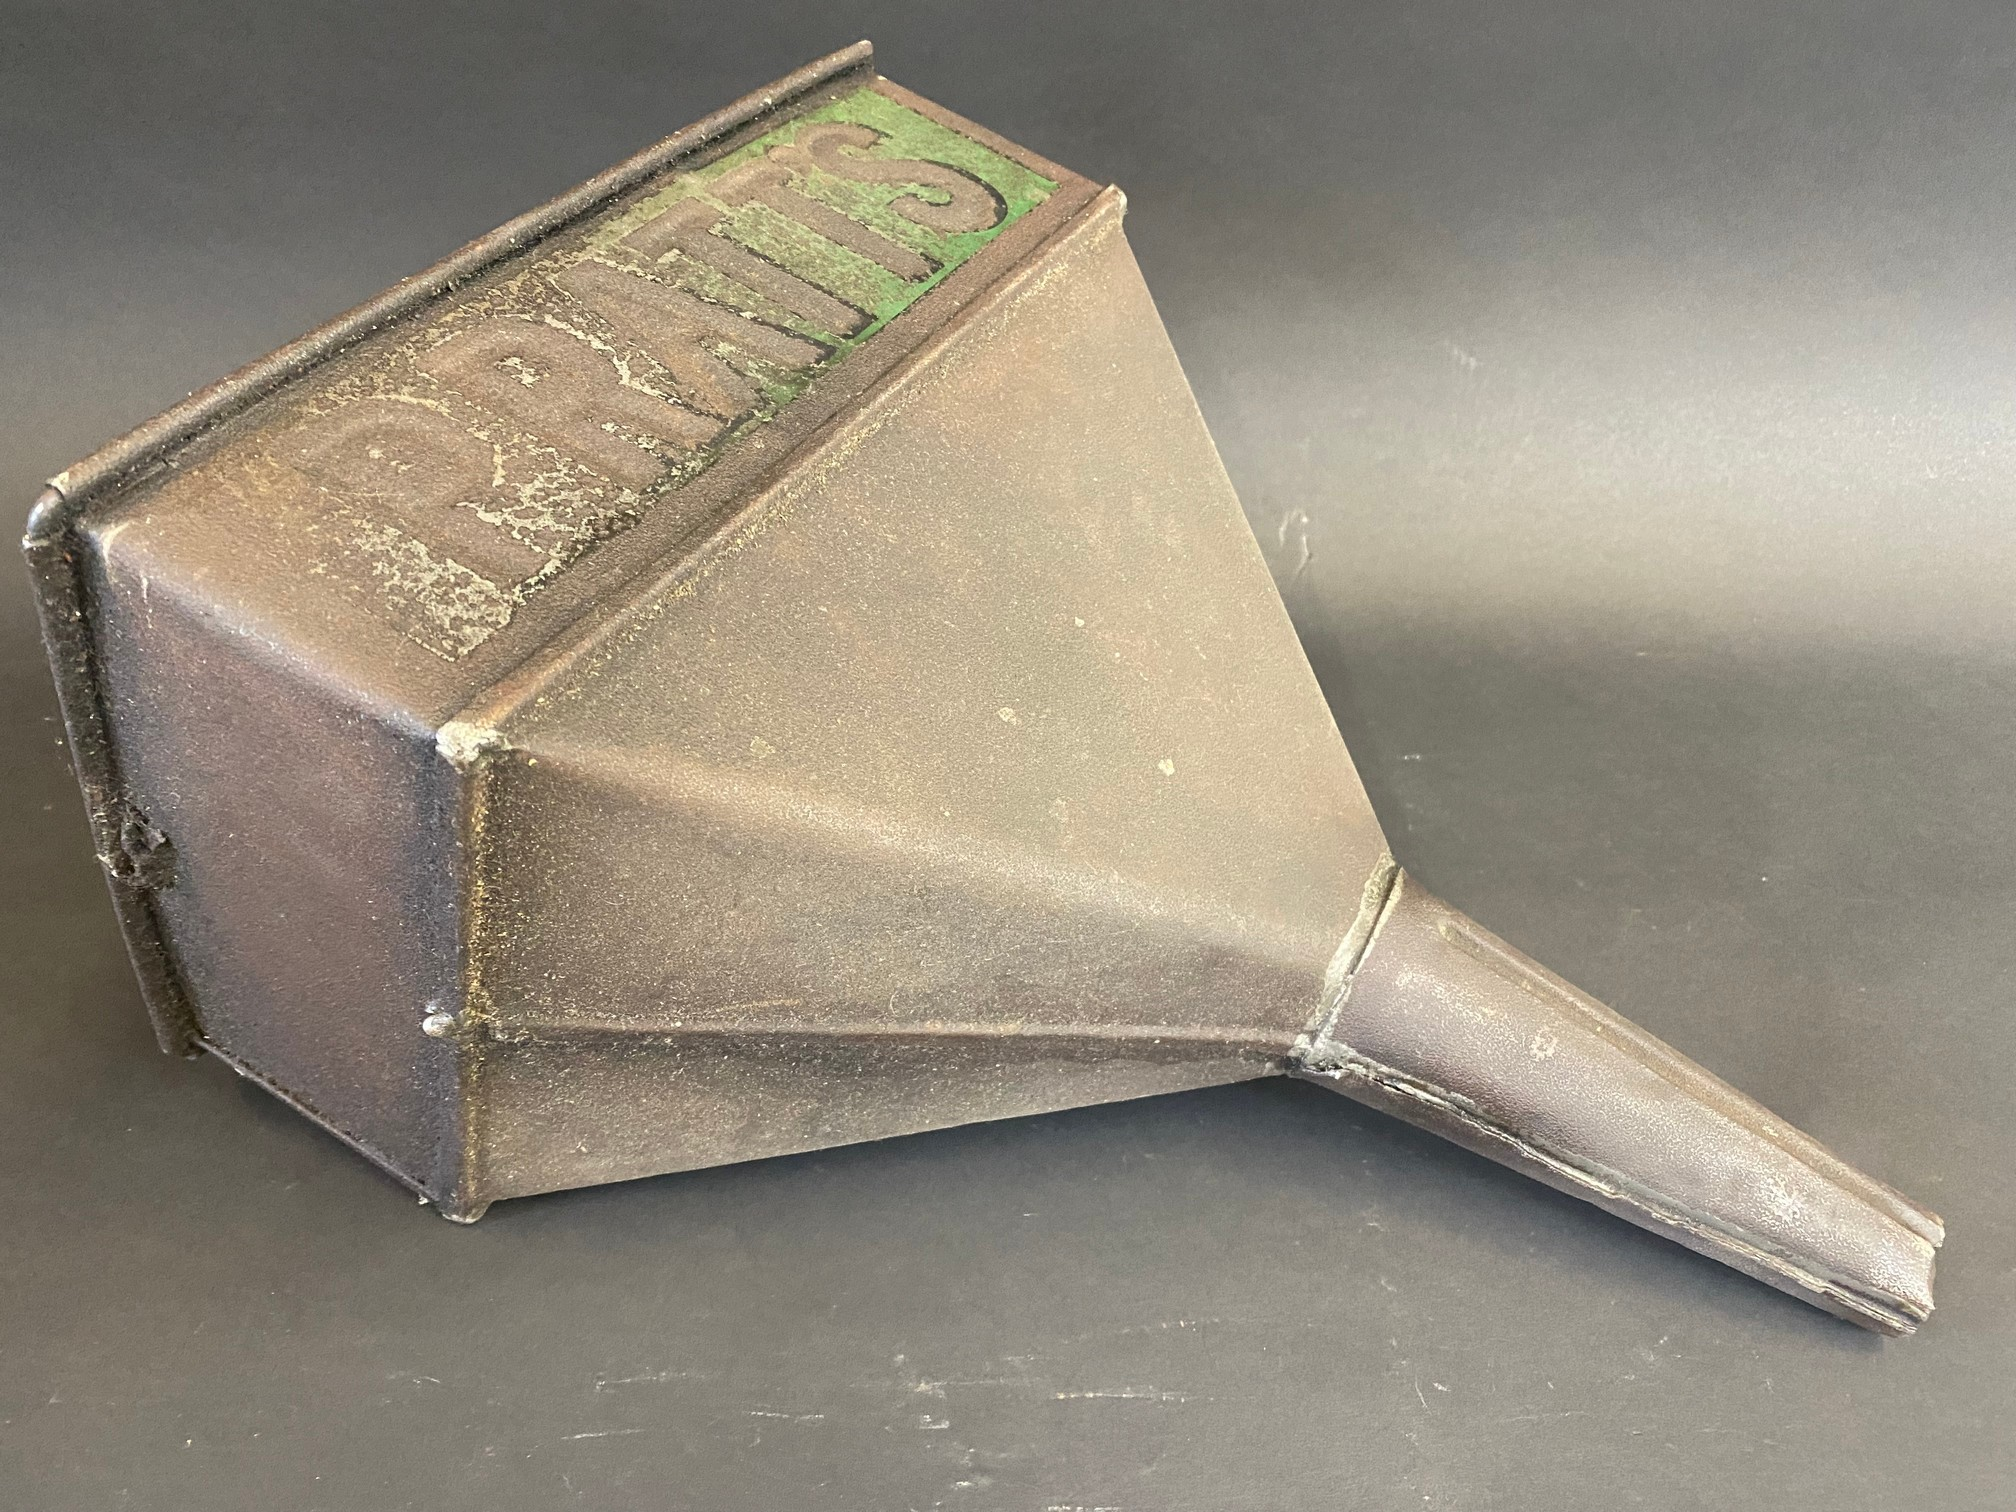 A Pratts rectangular funnel with embossed lettering and traces of original green paint. - Image 4 of 4